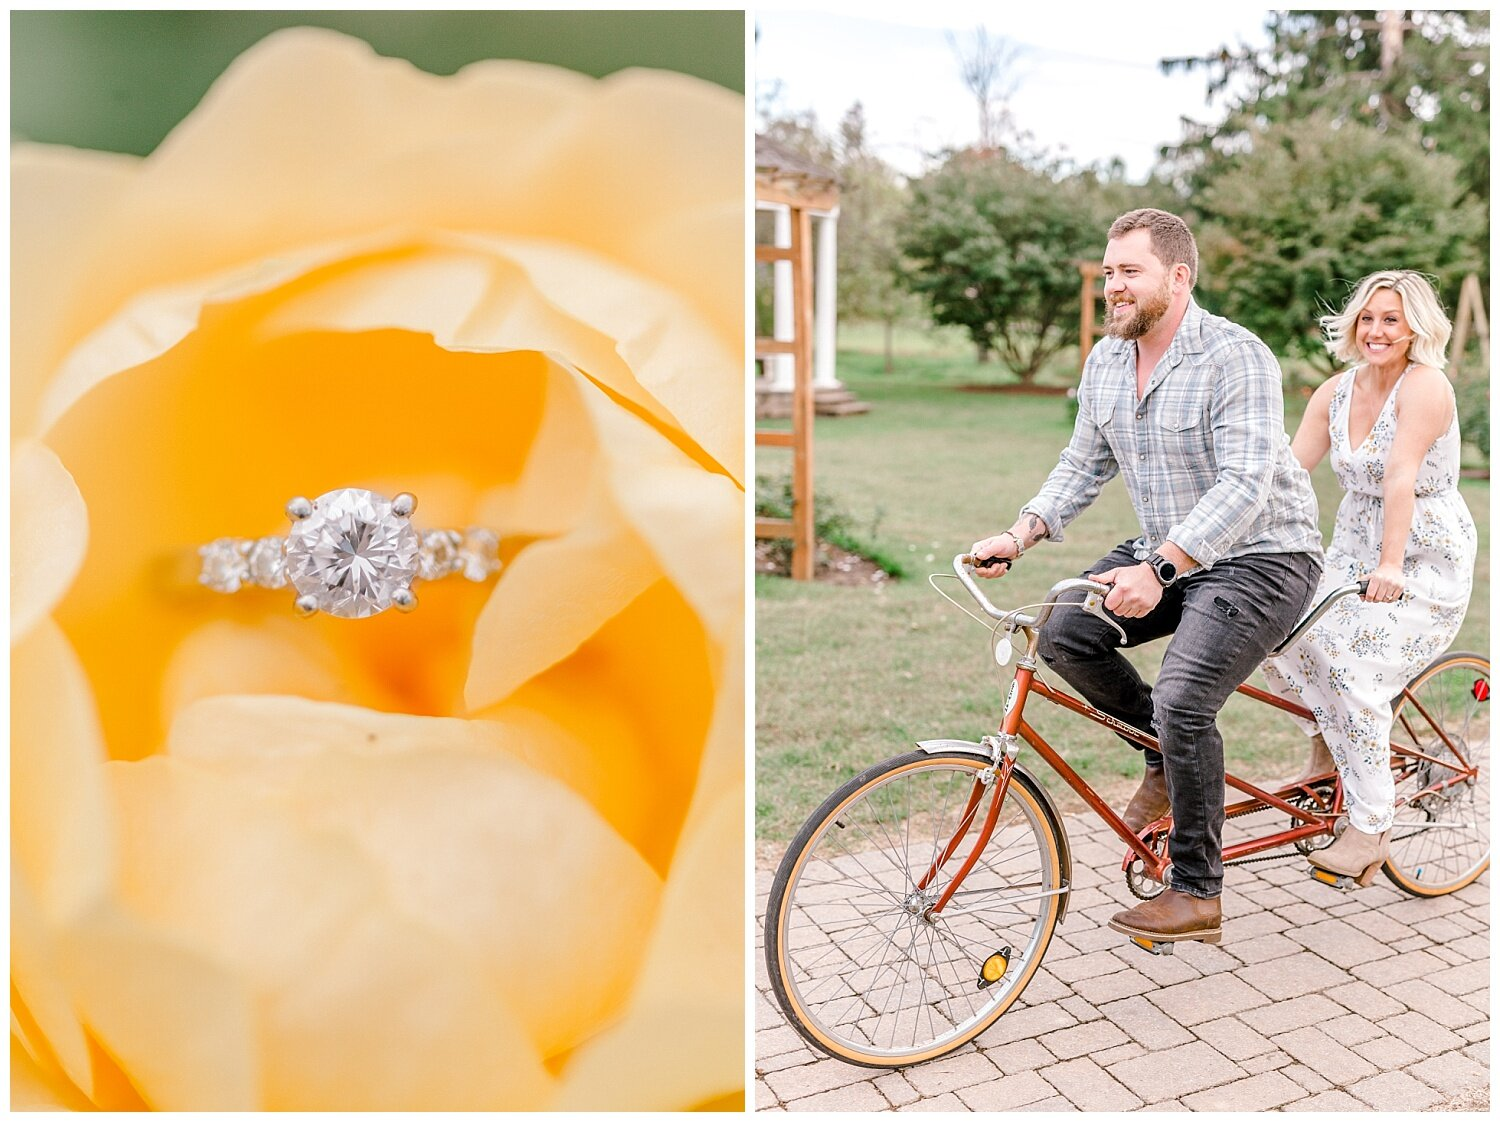 Allentown rose garden sunset engagement session with a tandem bike by lehigh valley pennsylvania based wedding and lifestyle photographer Jeannie Lytle of Lytle Photography Company_0006.jpg